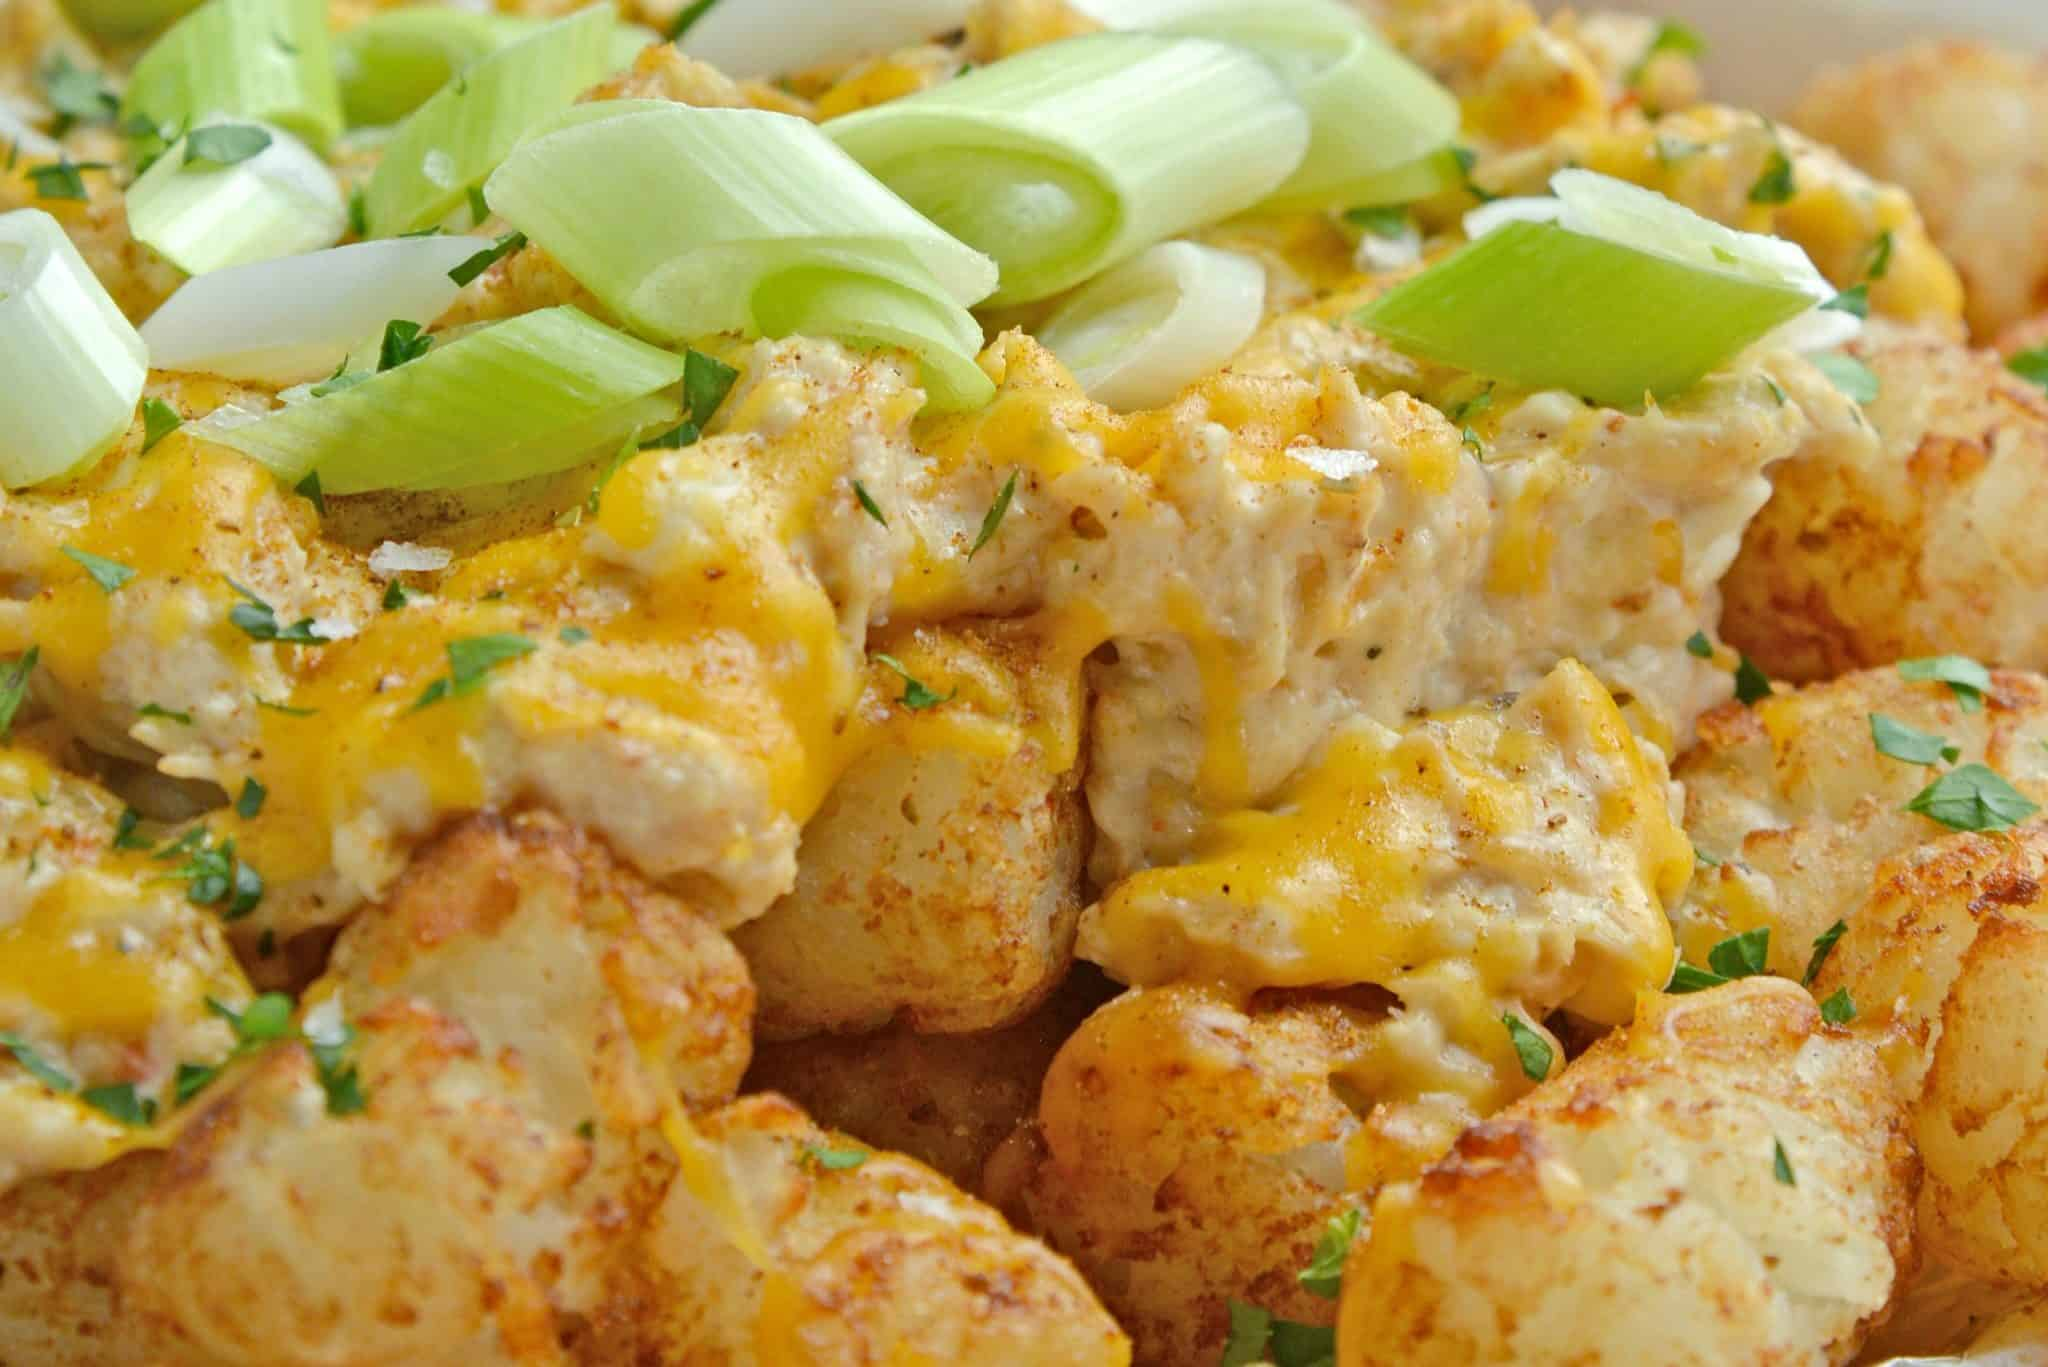 Crabby Totchos are crispy fried tater tots smothered in hot crab dip and topped with melty cheddar cheese. The perfect party appetizer!#tatertots #easyappetizerrecipes www.savoryexperiments.com